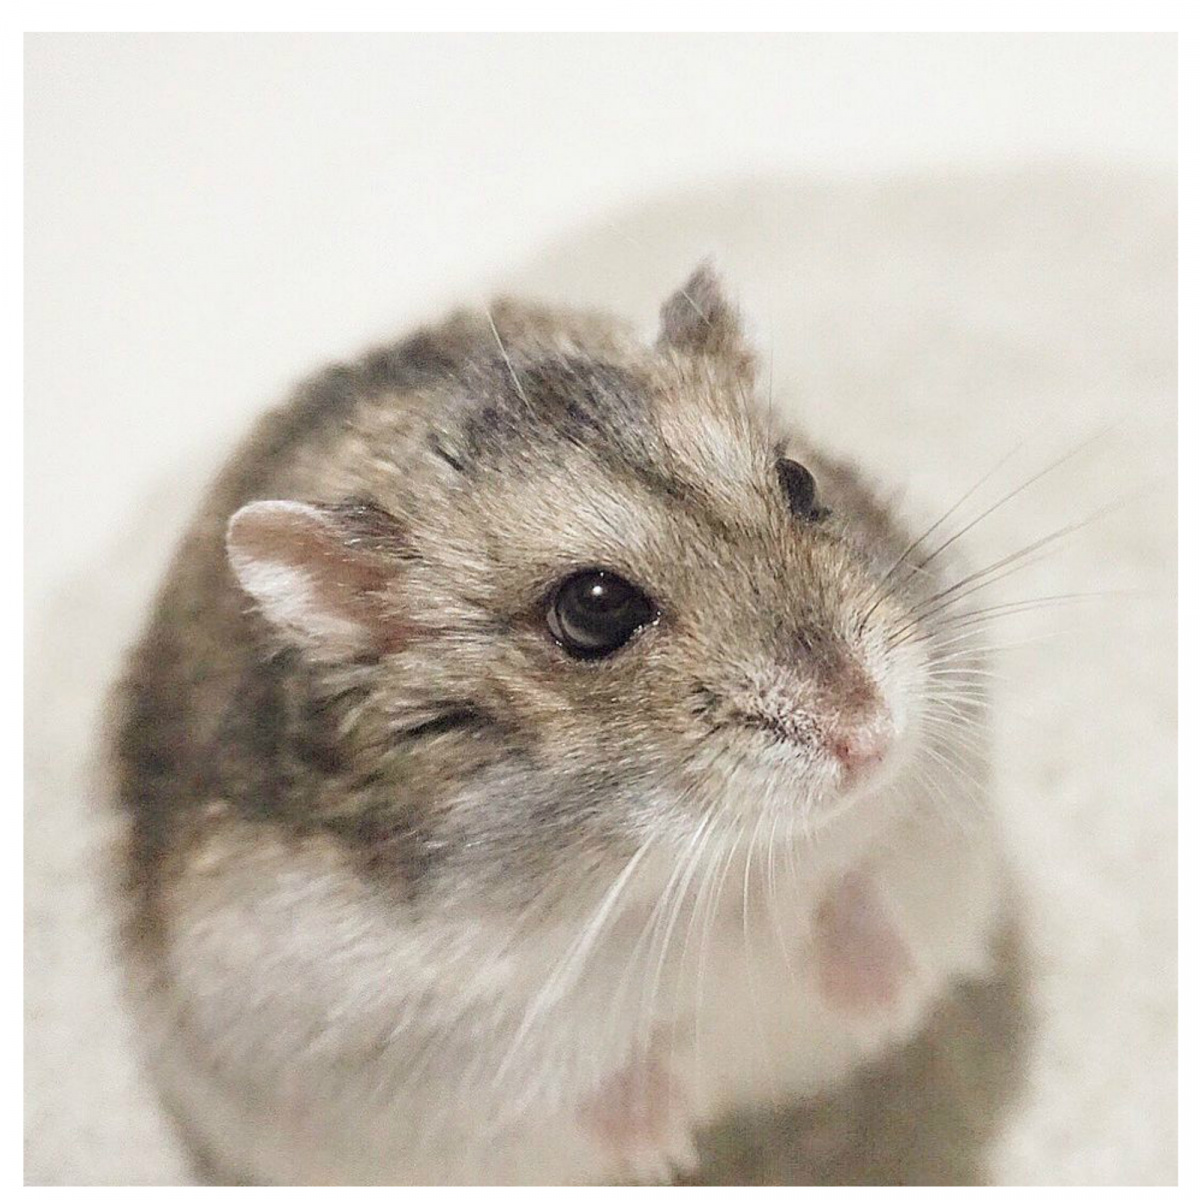 Cheese the Fat Hamster